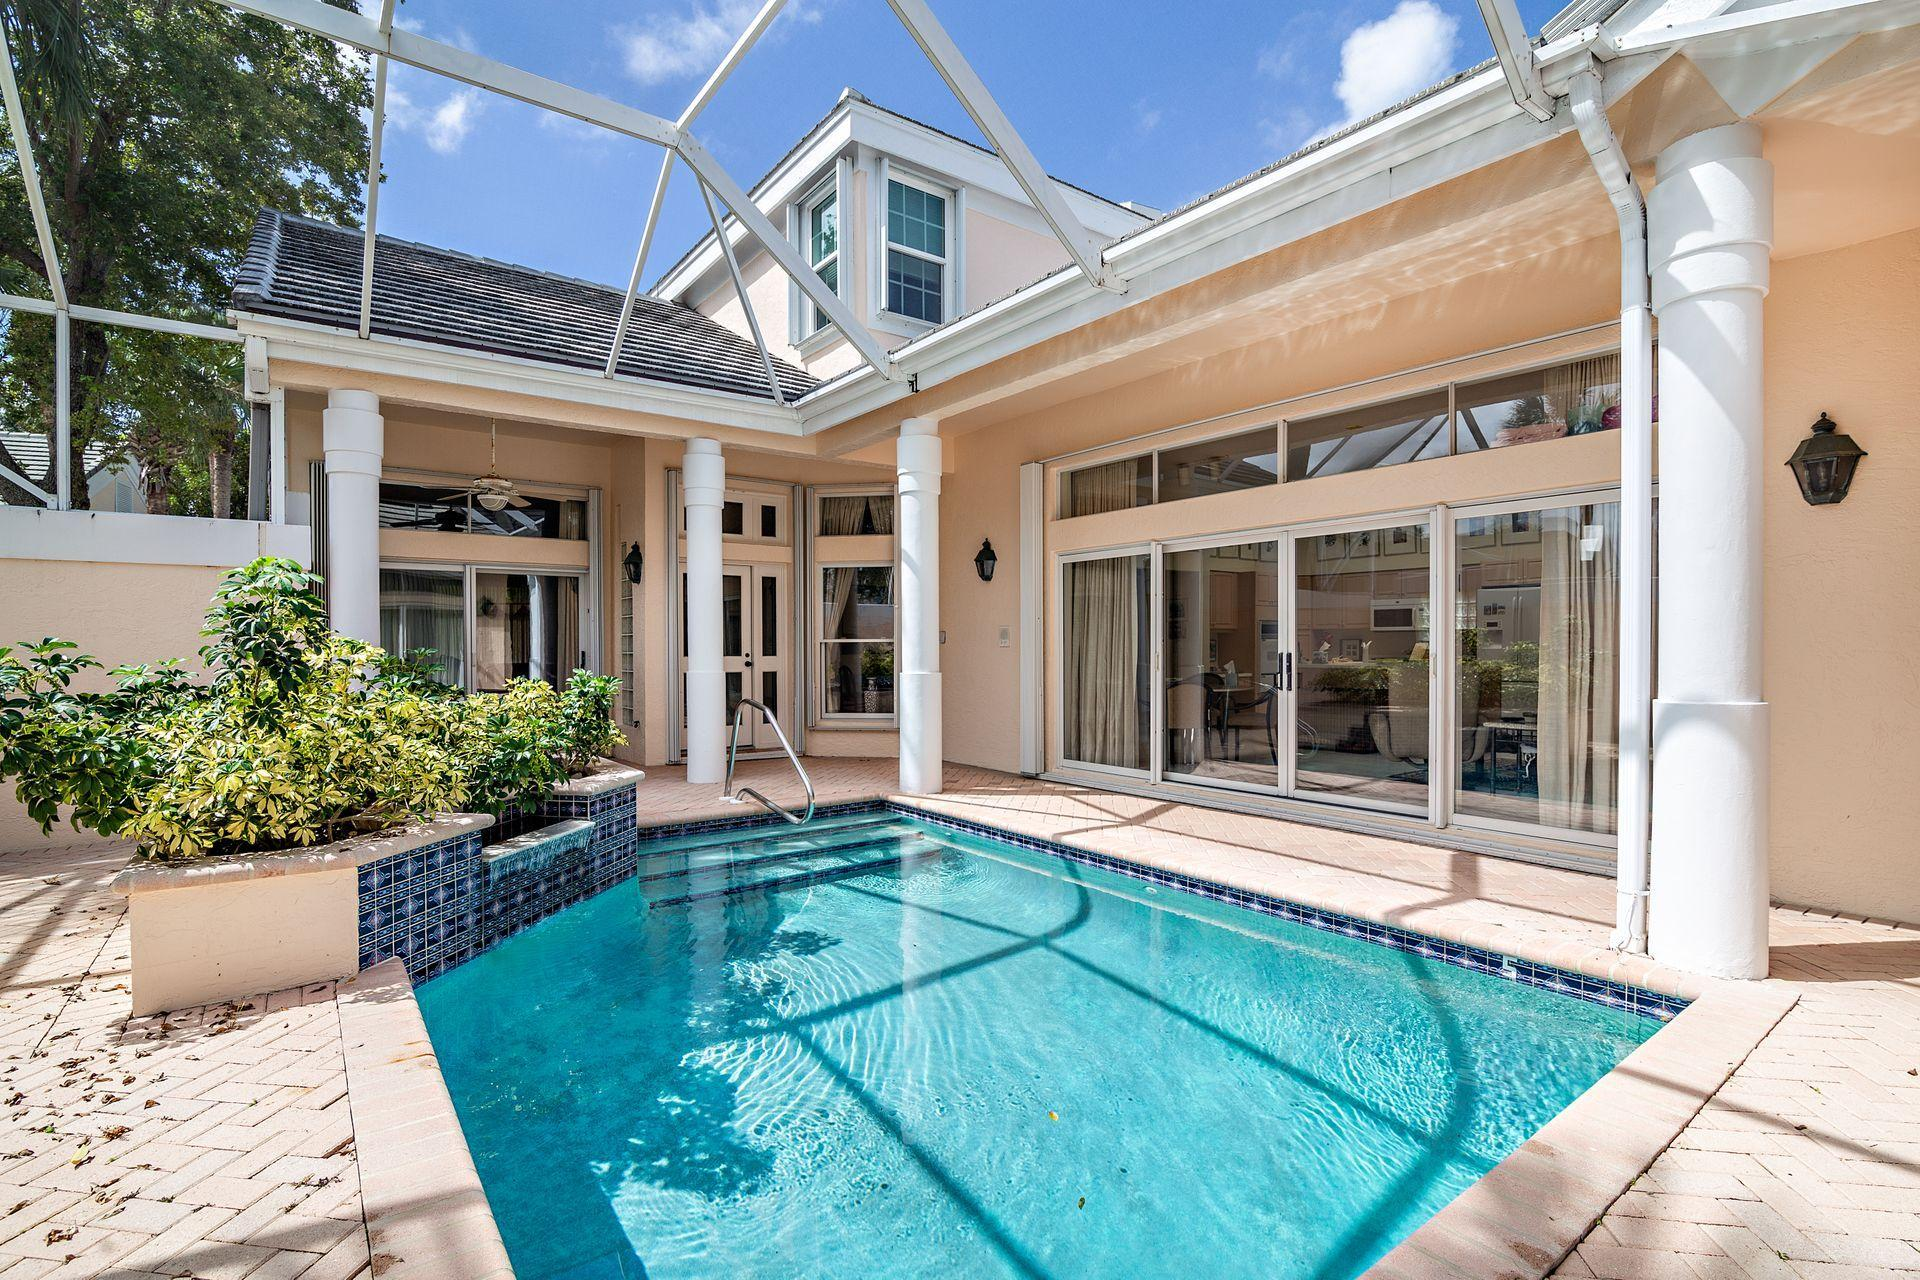 New Home for sale at 16323 Port Dickinson Drive in Jupiter